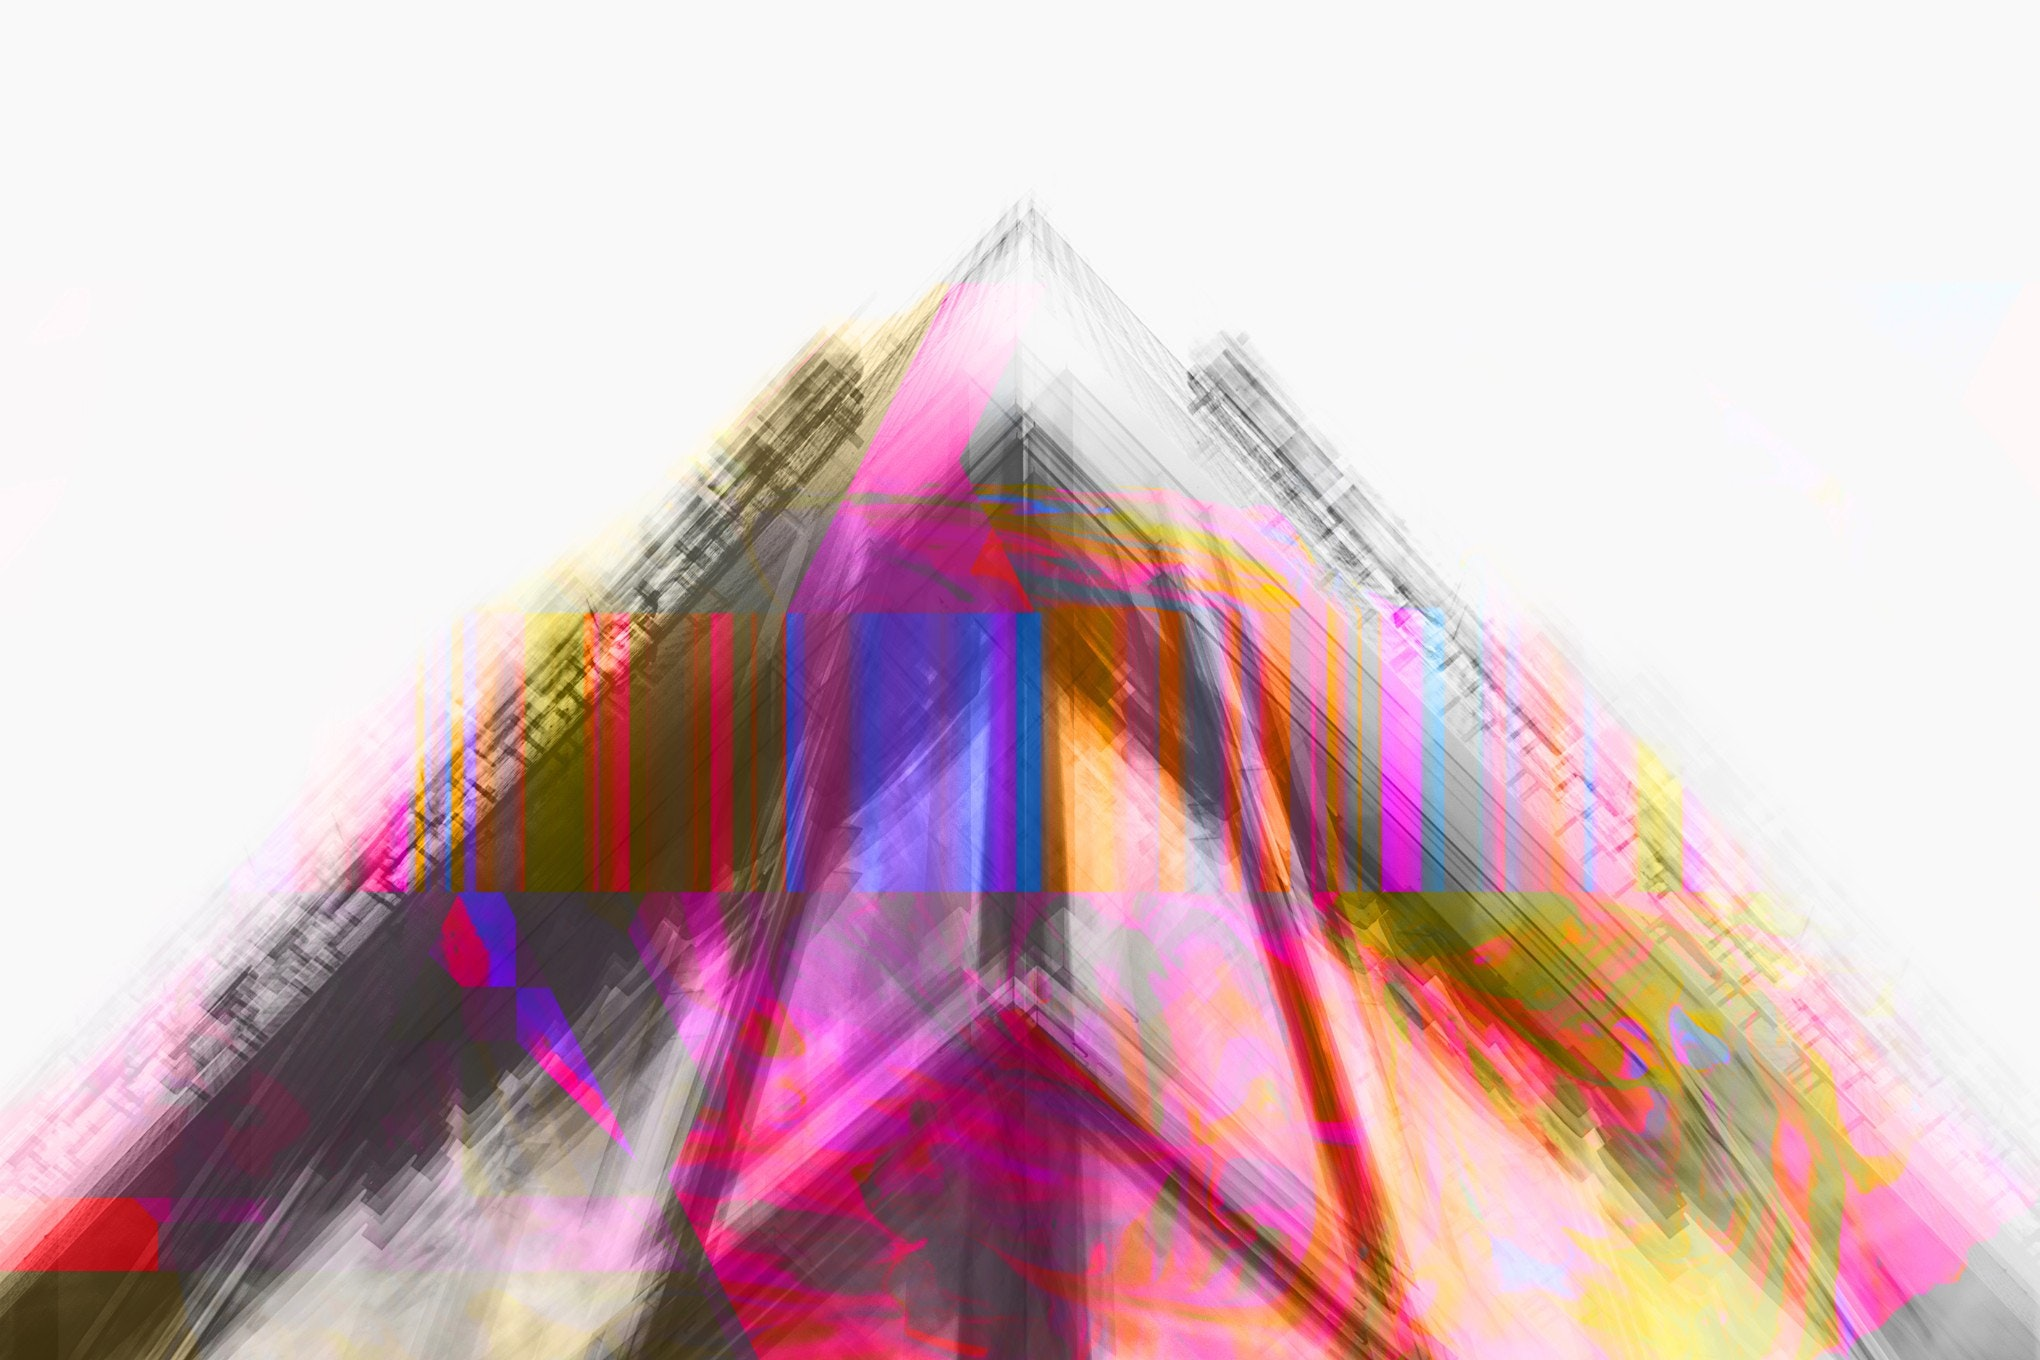 Visuo №2 - Abstract Architecture Art Series by Scott Webb